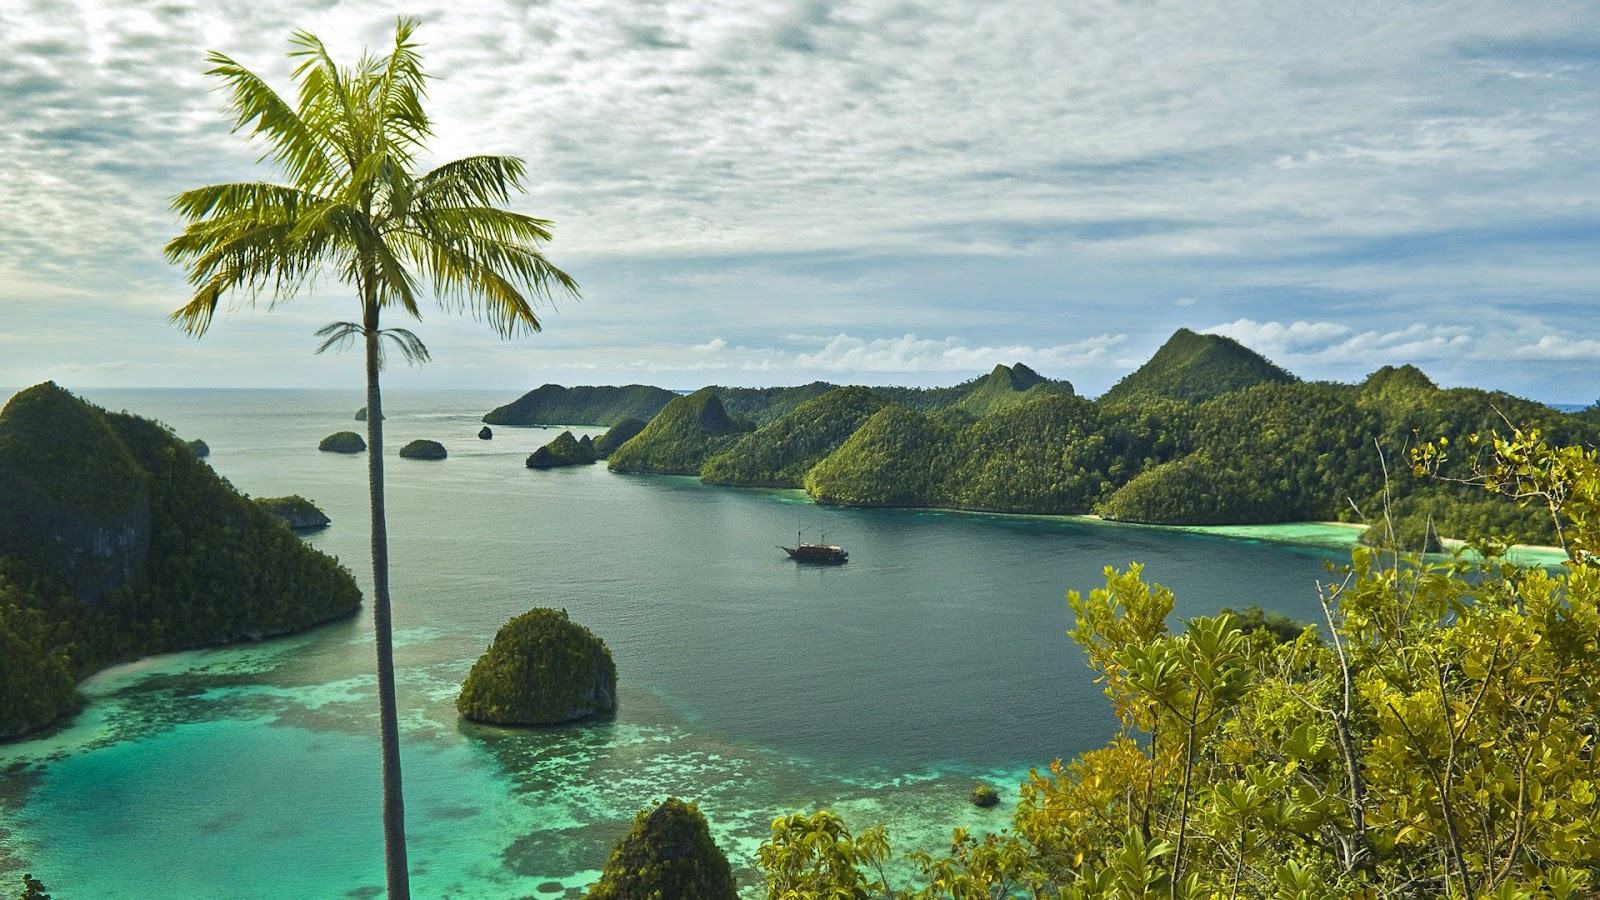 View from the top of Pulau Wayag, Raja Ampat, West Papua, Irian Jaya, Indonesia